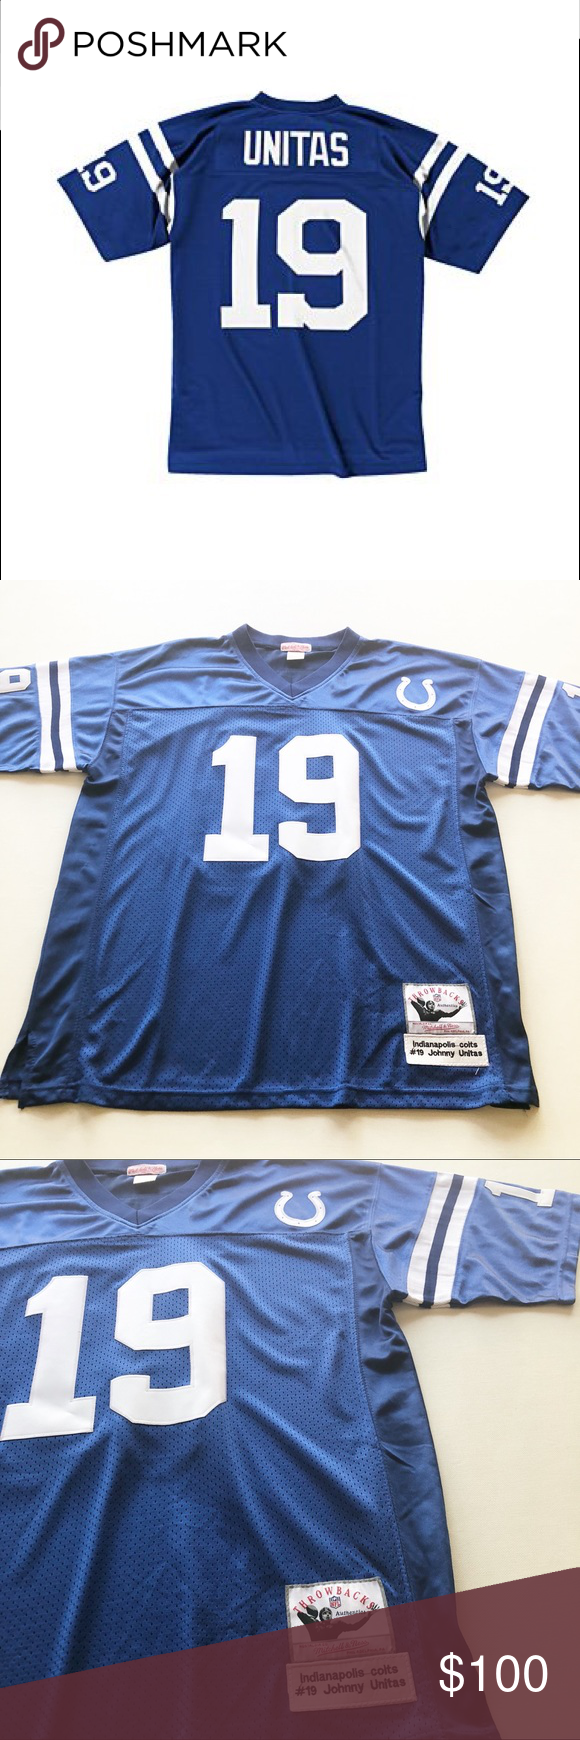 finest selection 386cd 87726 Johnny Unitas #19 Colts Football Jersey Men's Mitchell ...